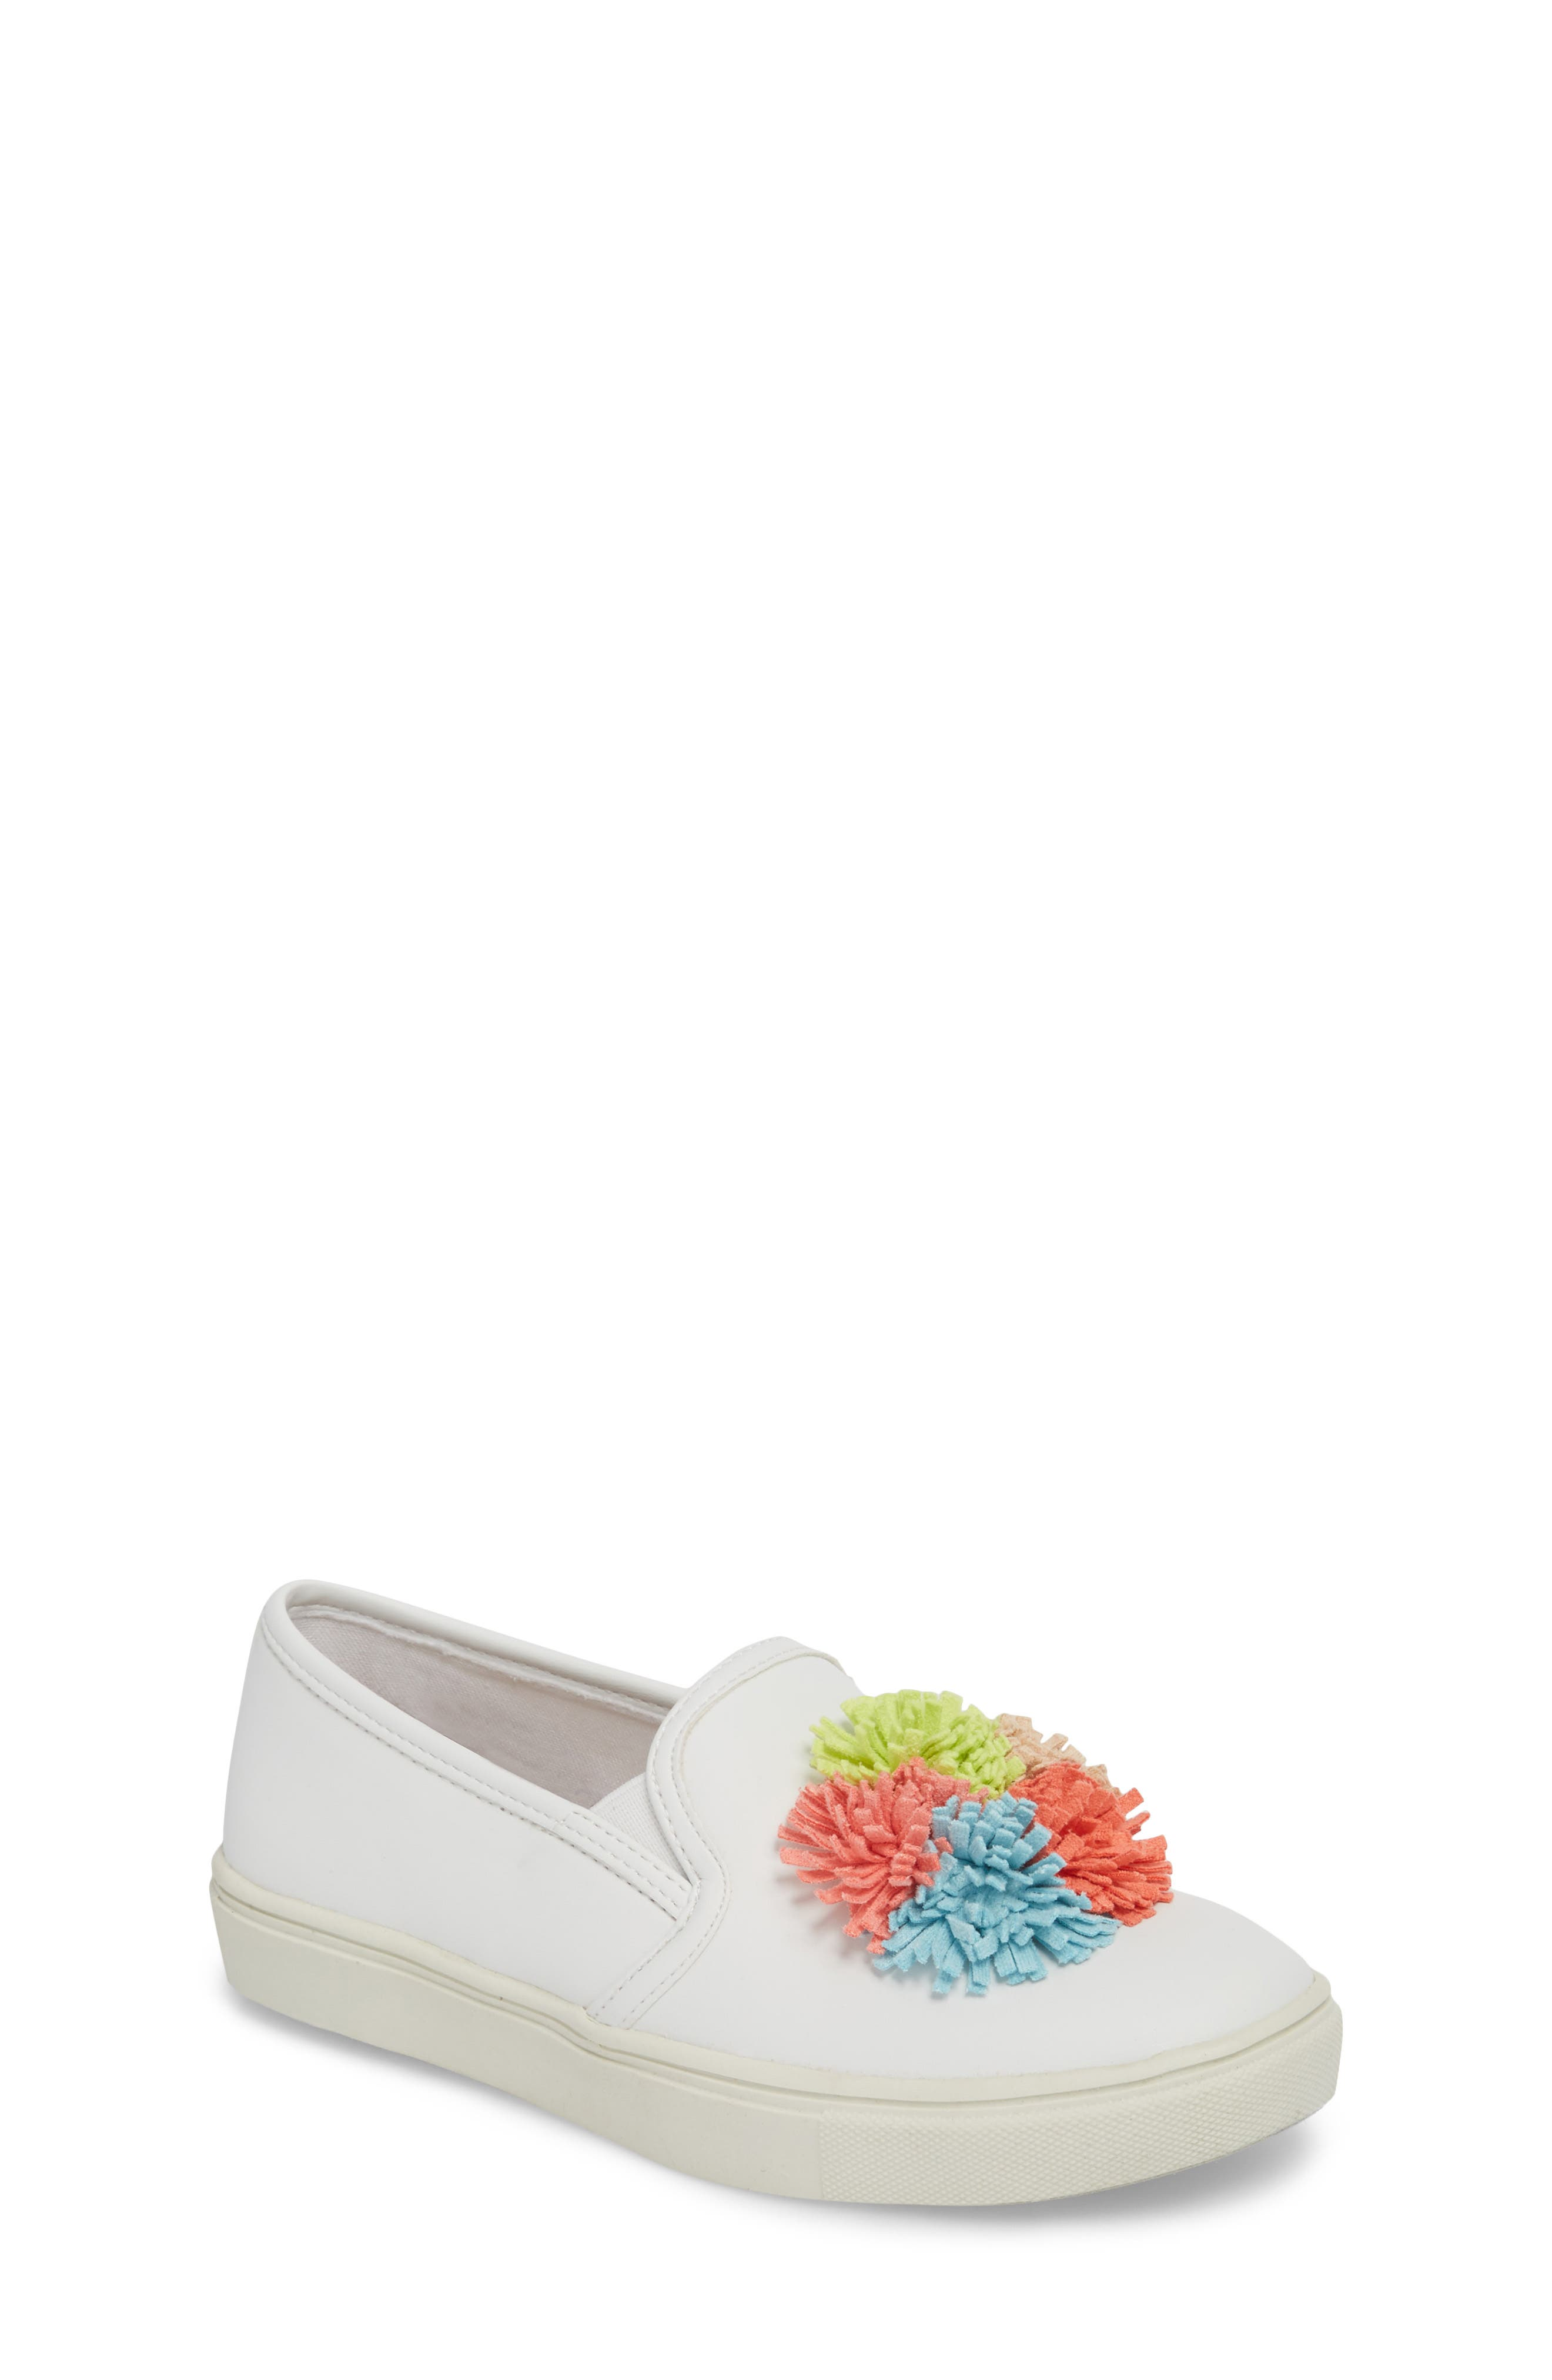 Twiny Pompom Slip-On Sneaker,                         Main,                         color, White Faux Leather